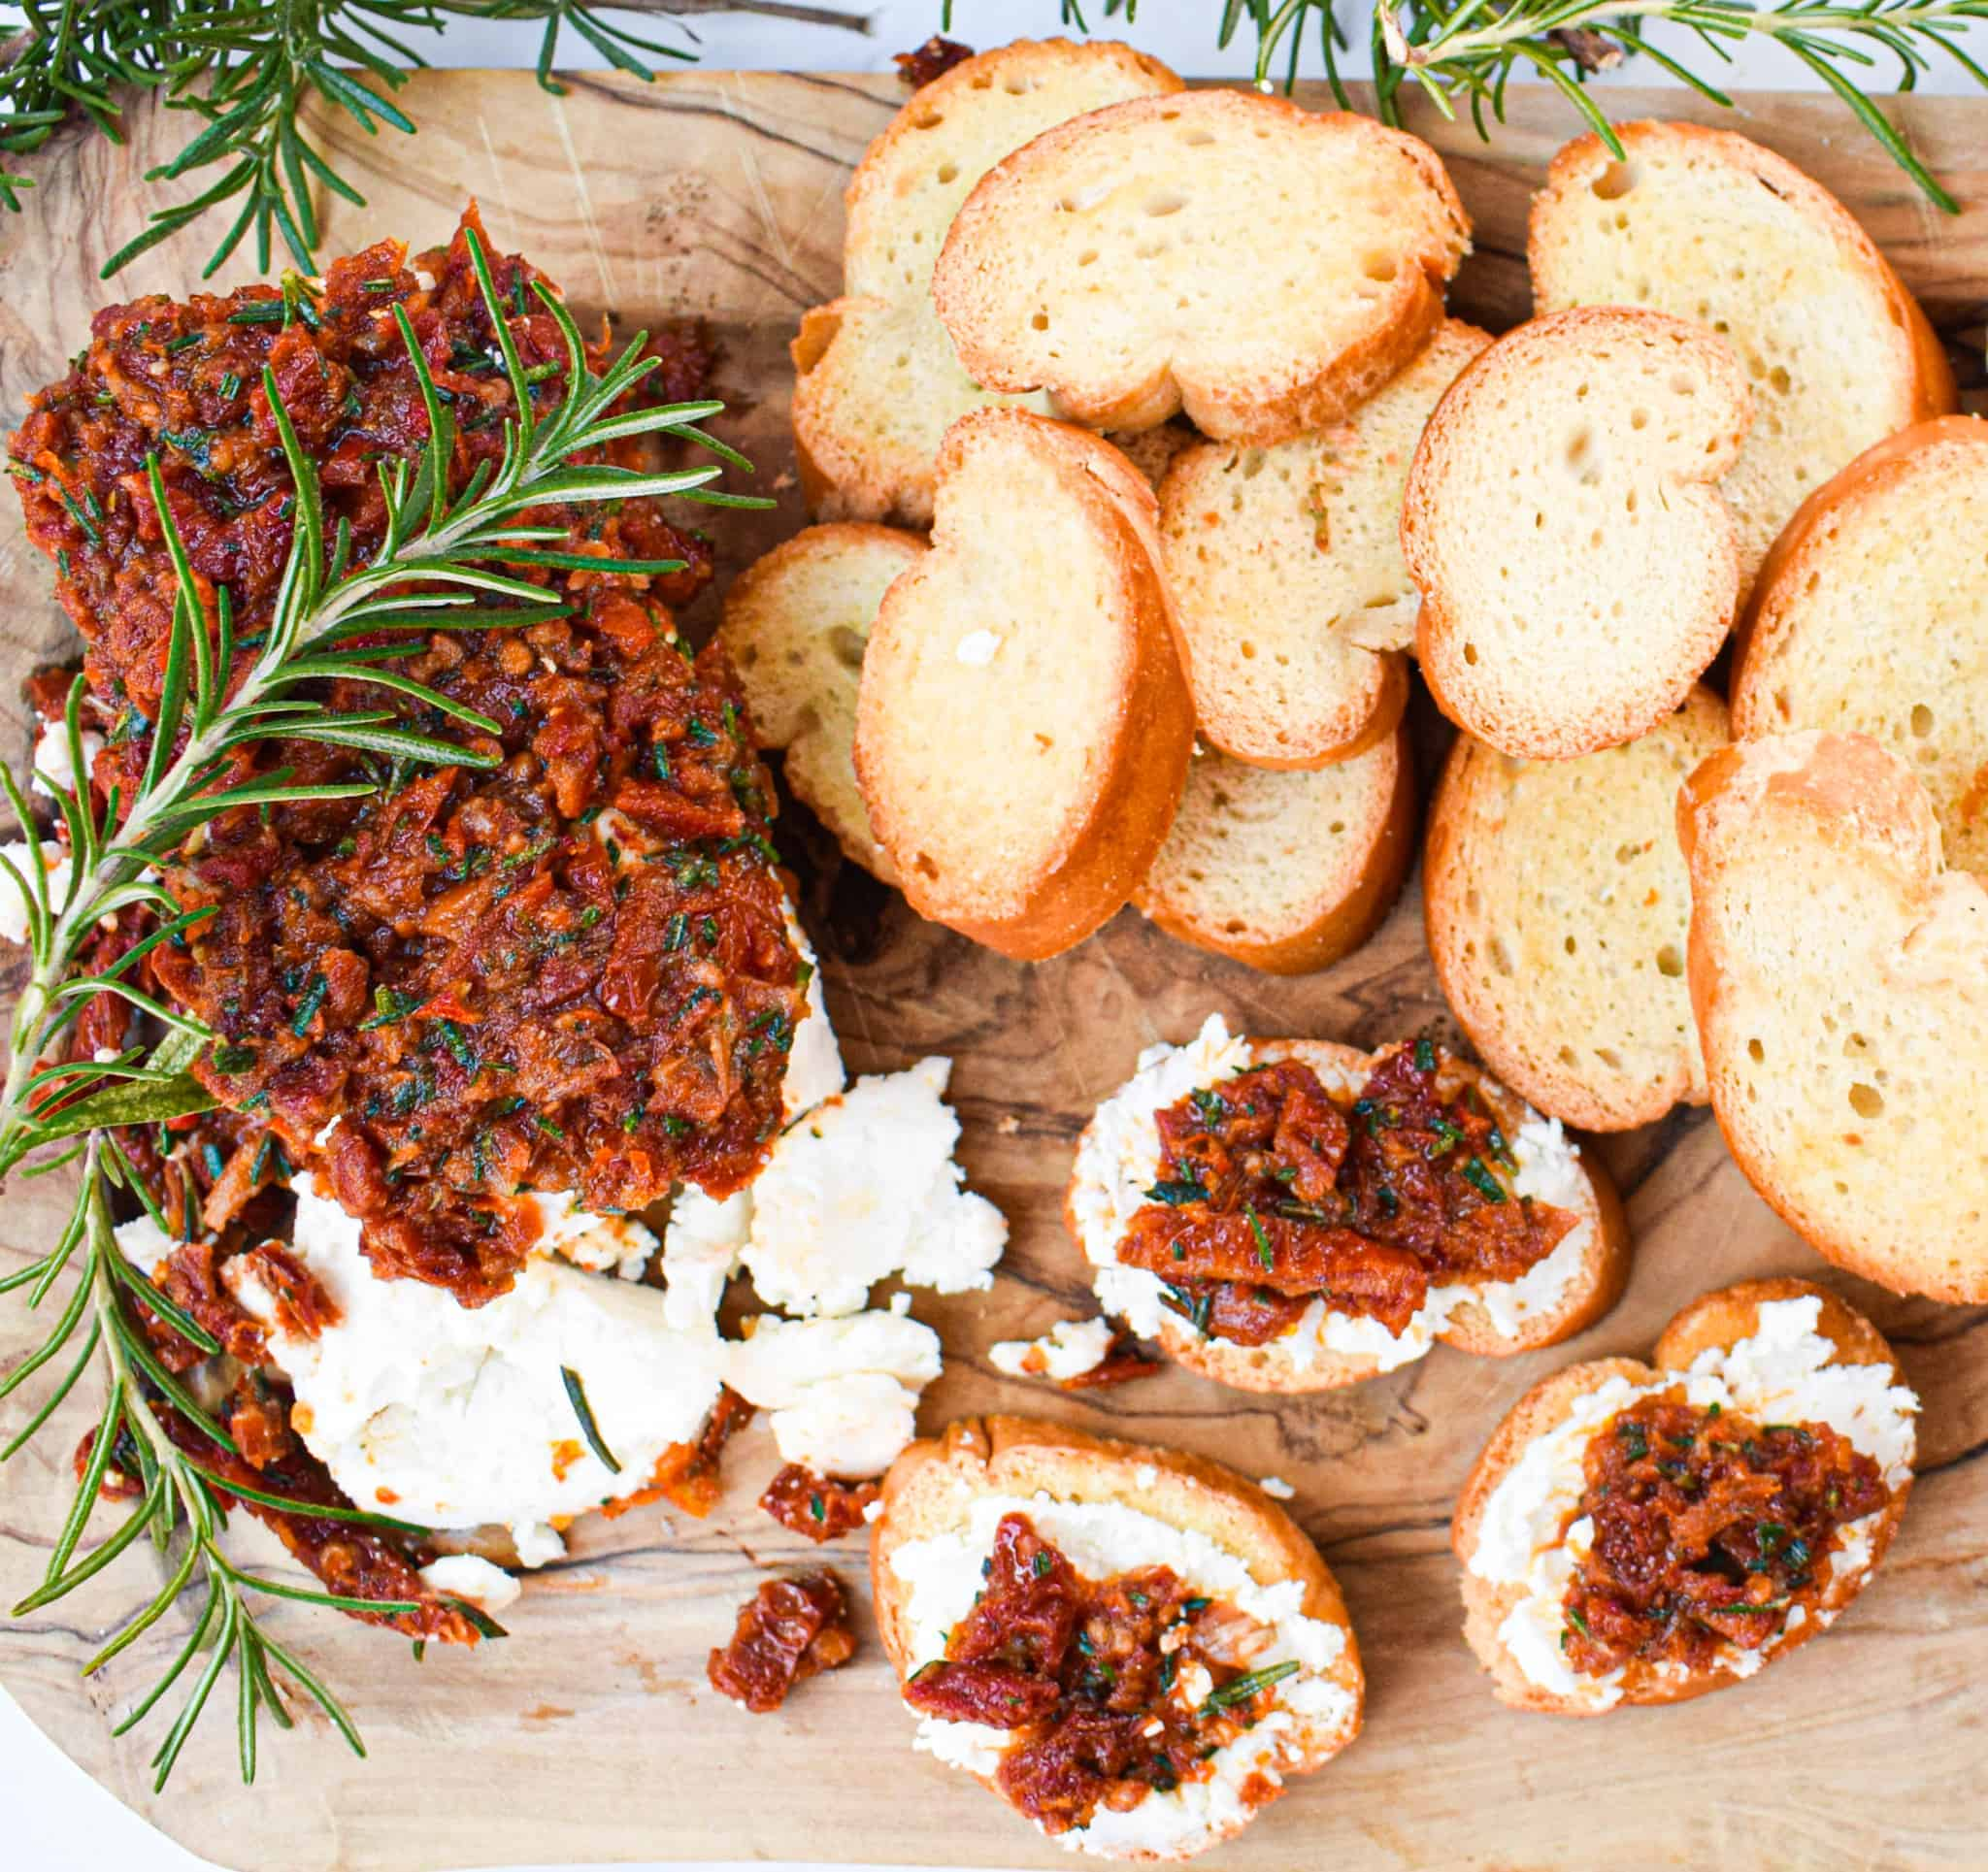 Goat Cheese Crostini with Garlic & Rosemary Sun-dried Tomatoes on toasted baguette perfect holiday appetizer by the jam jar kitchen